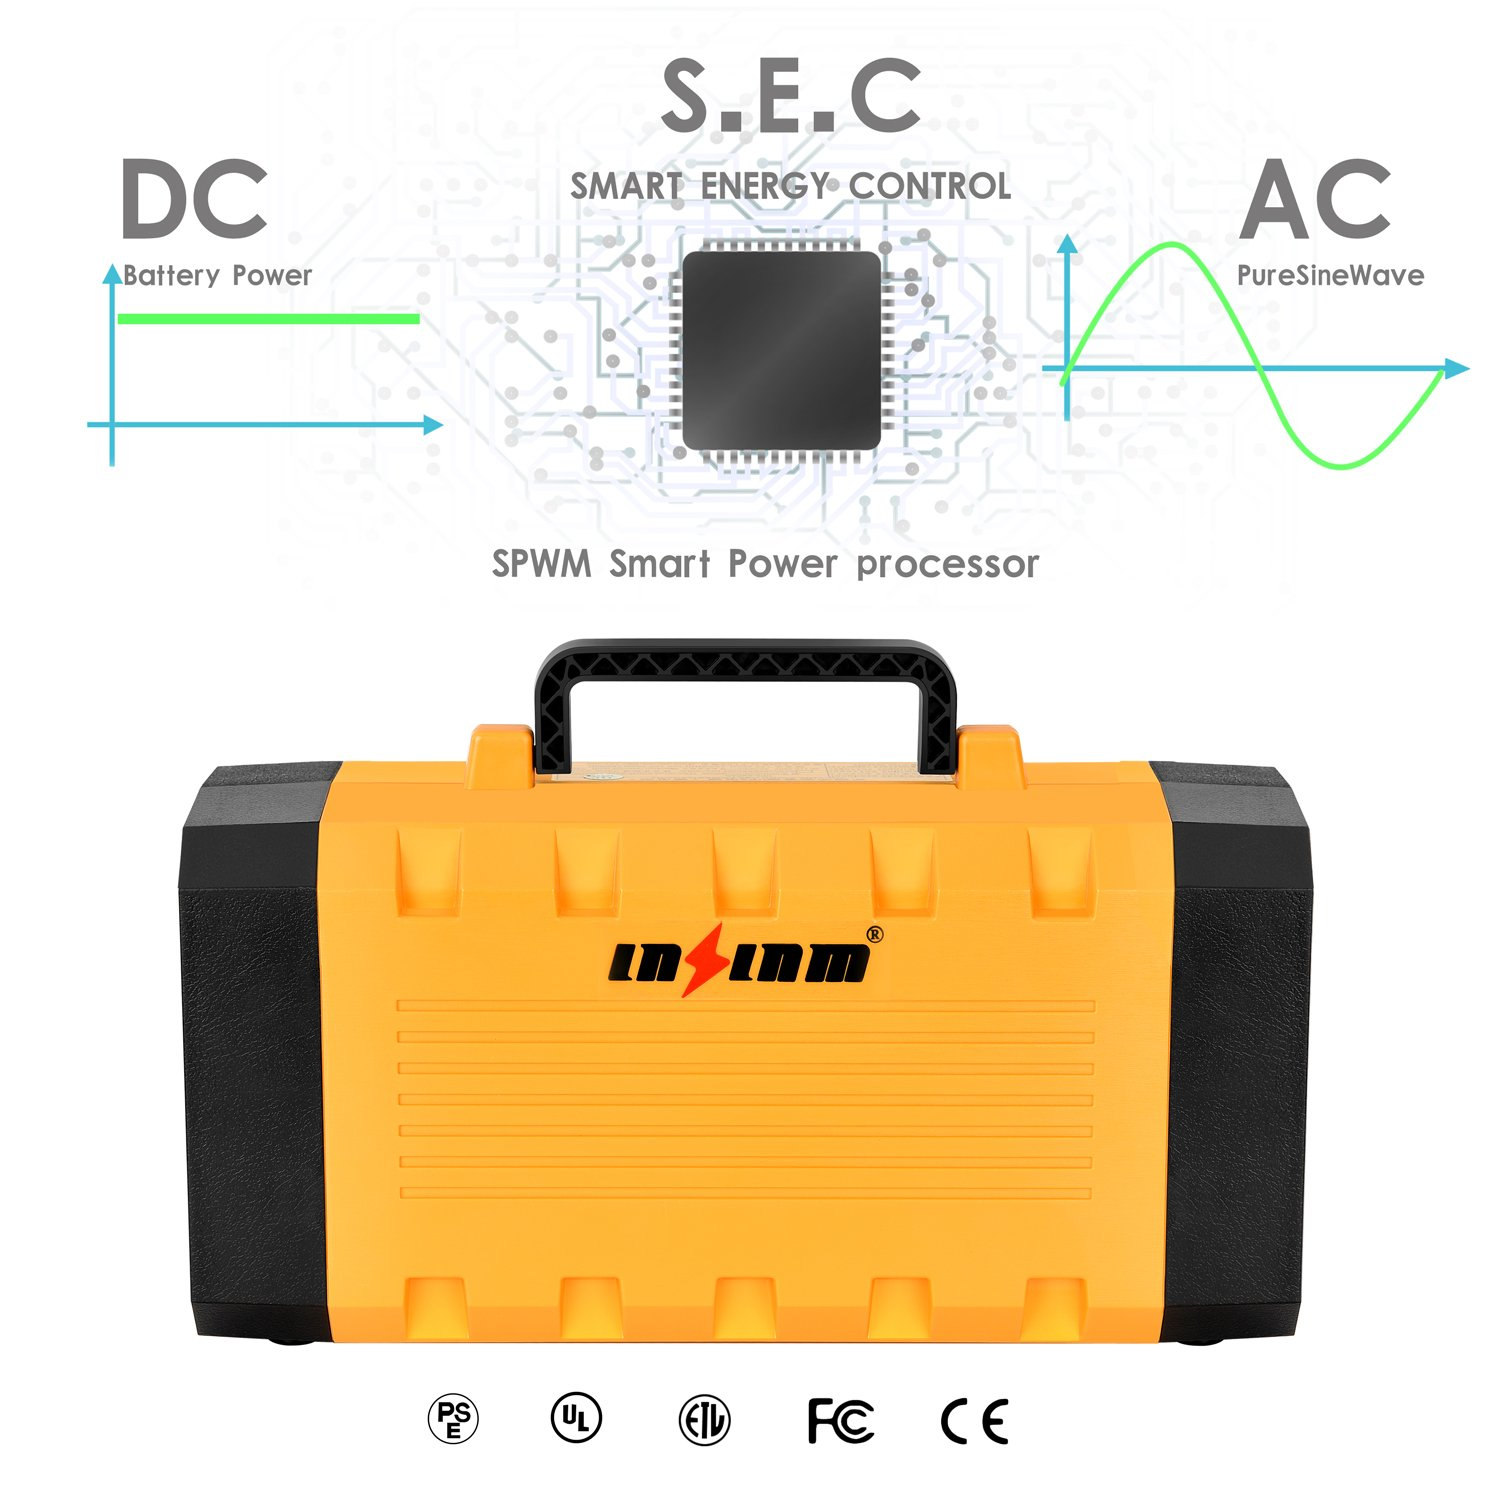 Lnslnm 500w Portable Generator Power Inverter 288wh 90 Suoer 2 In 1 Charger 500 Watt Typer Saa C 000mah Camping Cpap Battery Backup Home Source Charged By Solar Panel Wall